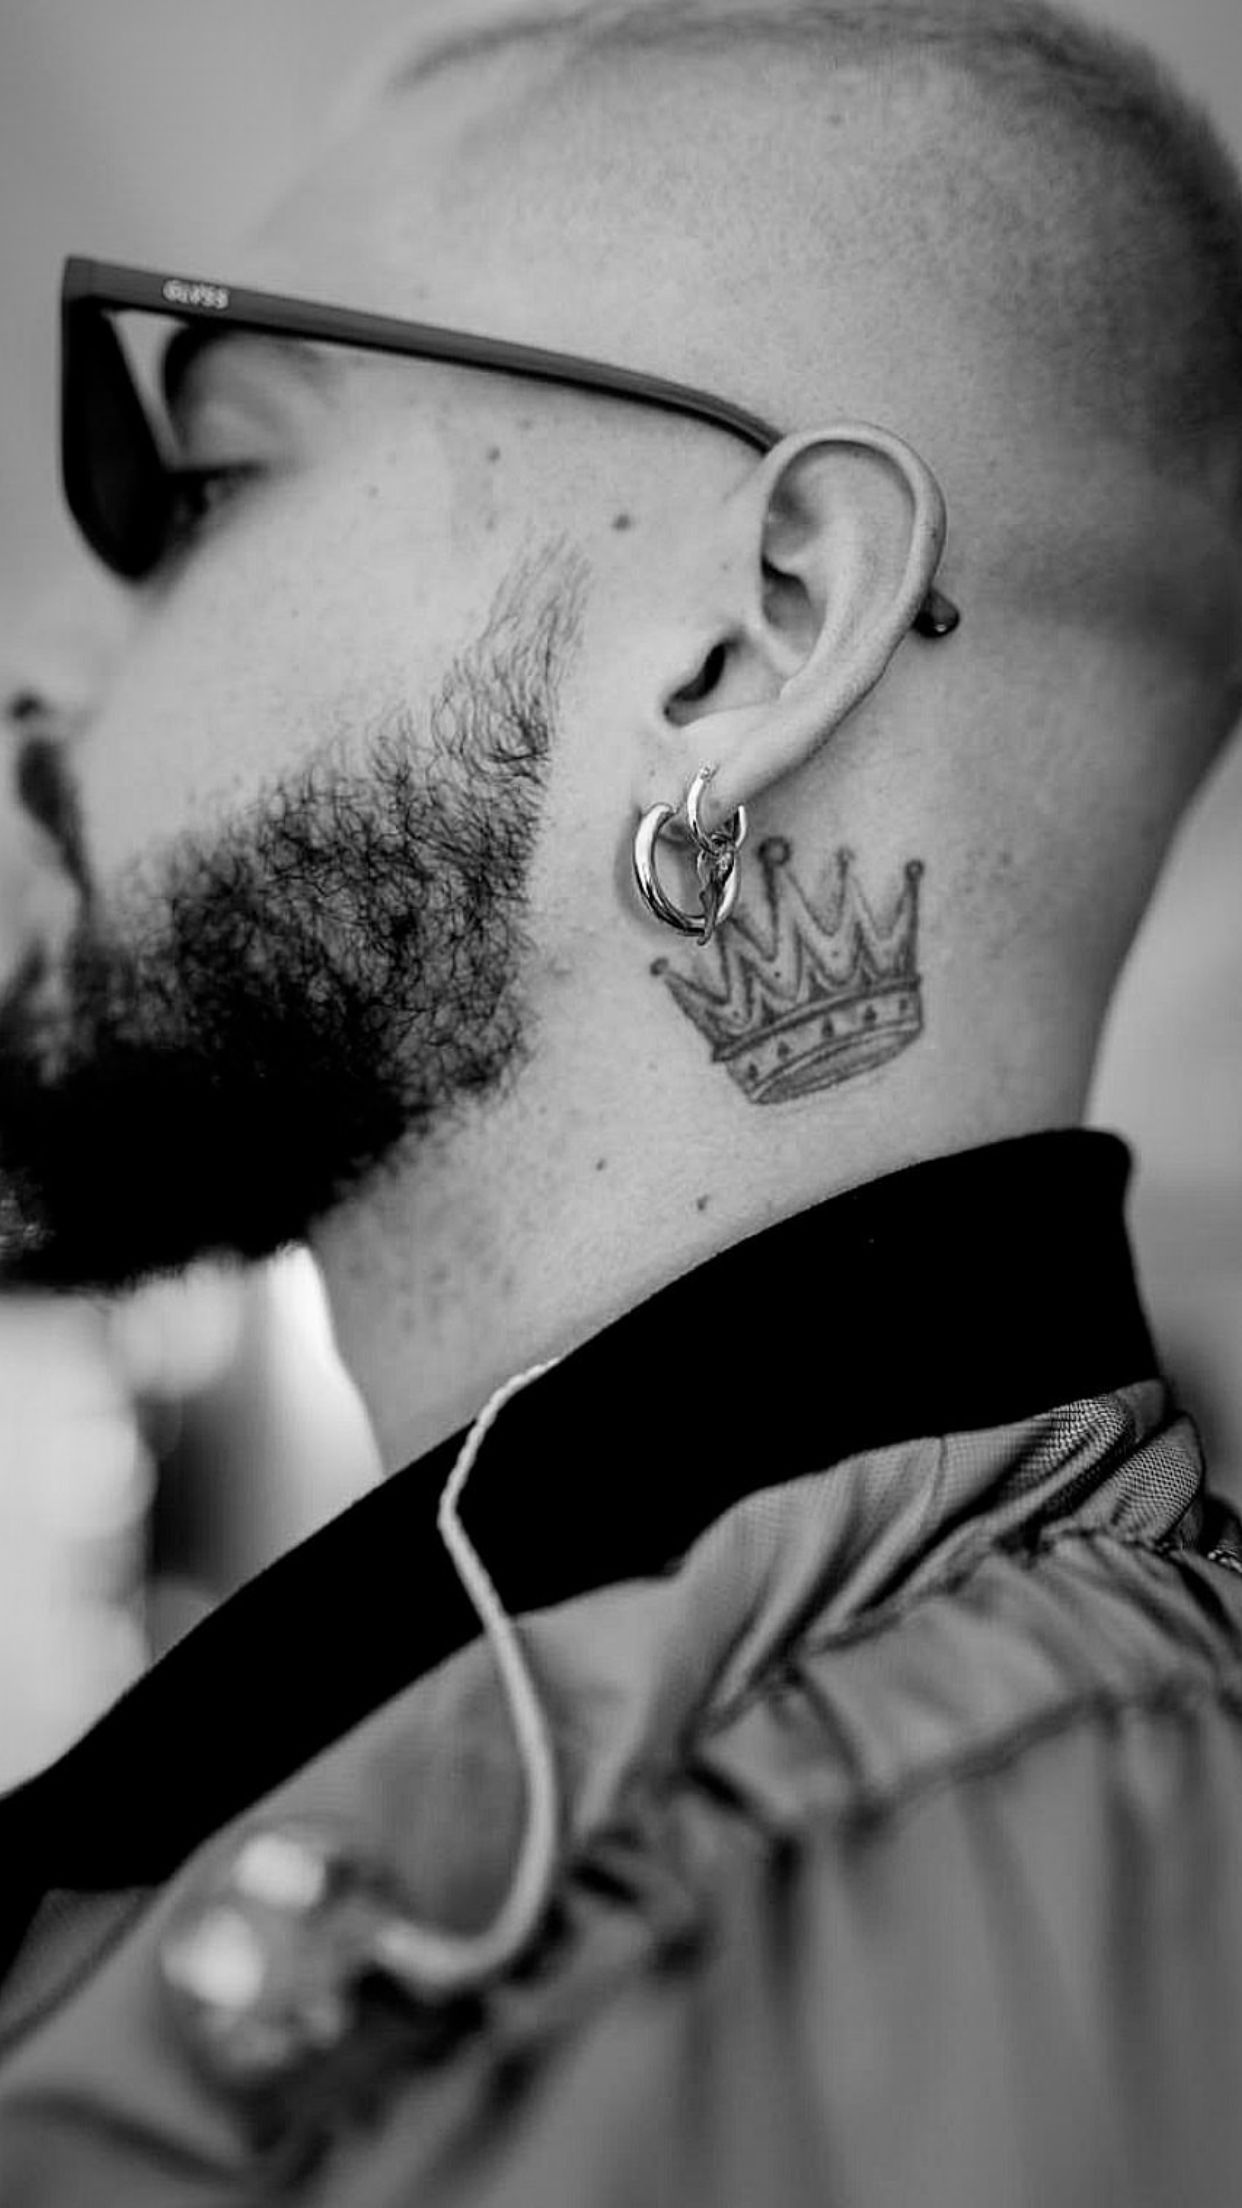 Annymartepena Neck Tattoo For Guys Tattoos For Guys Badass Small Neck Tattoos